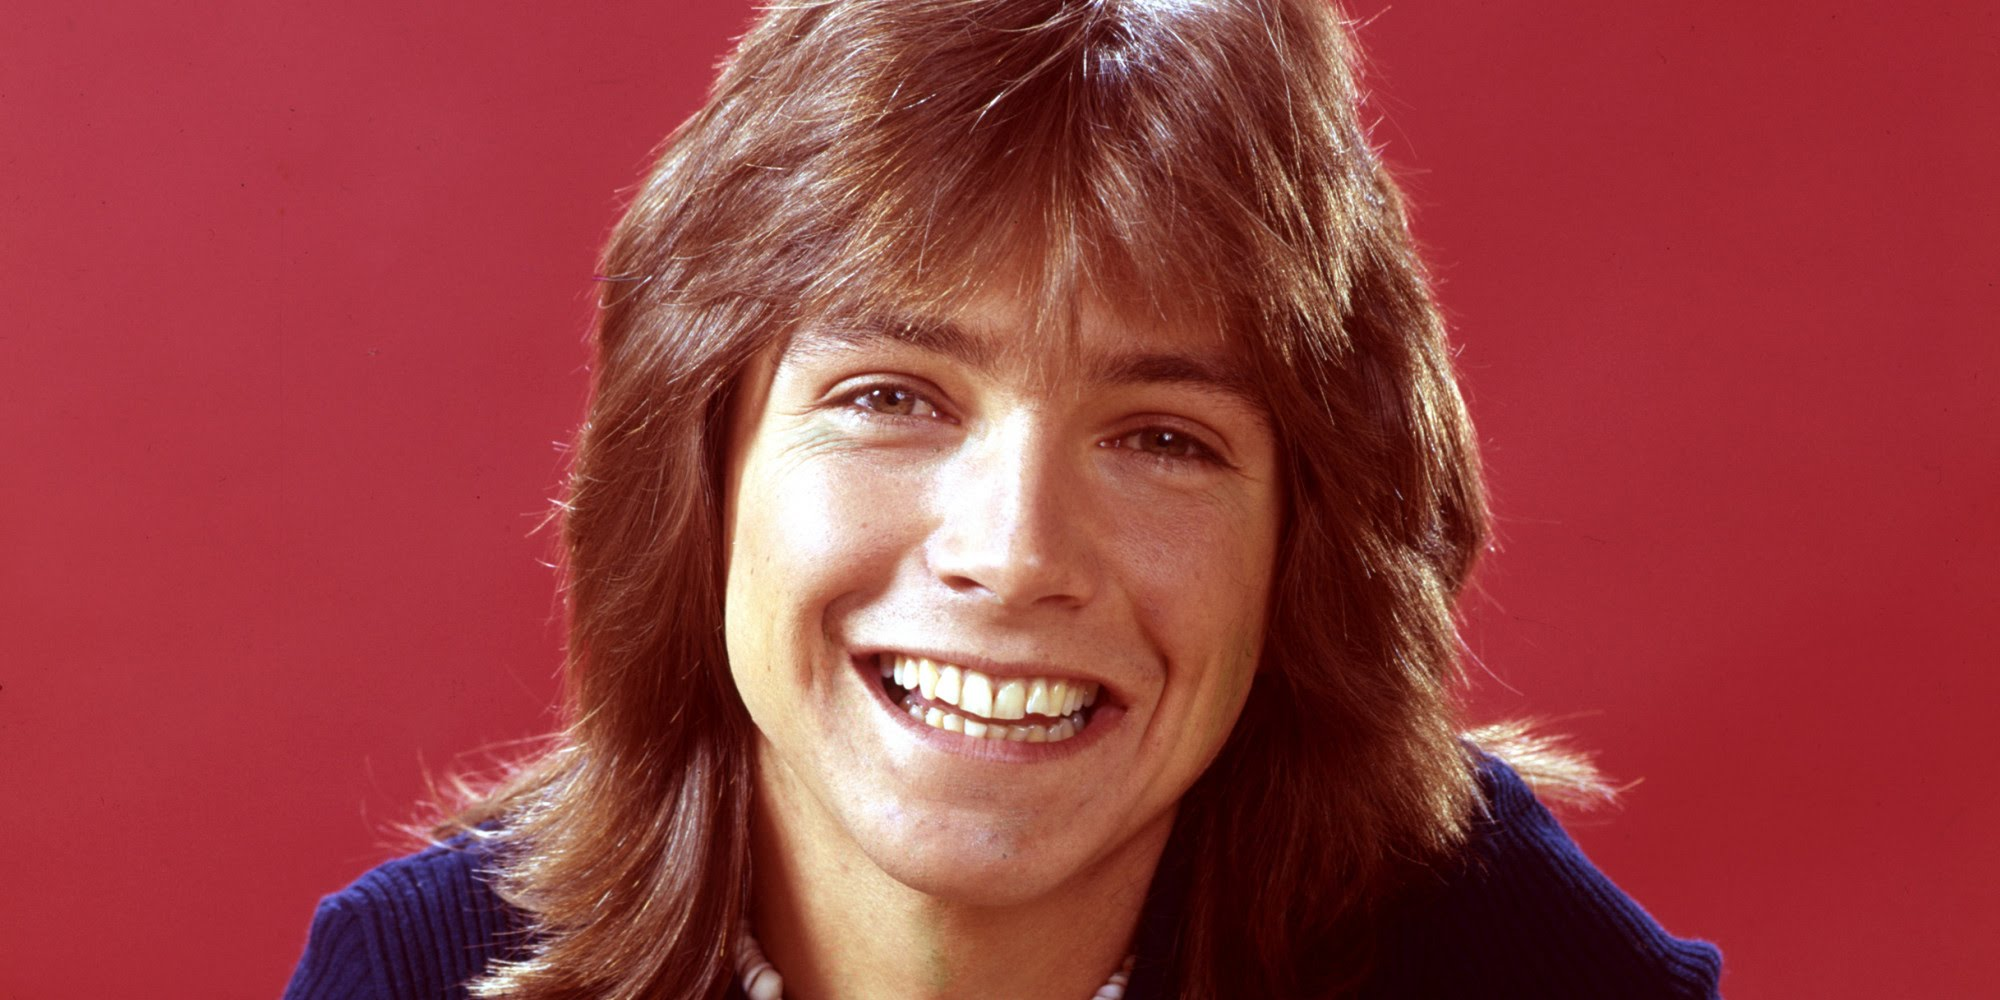 David Cassidy - Then